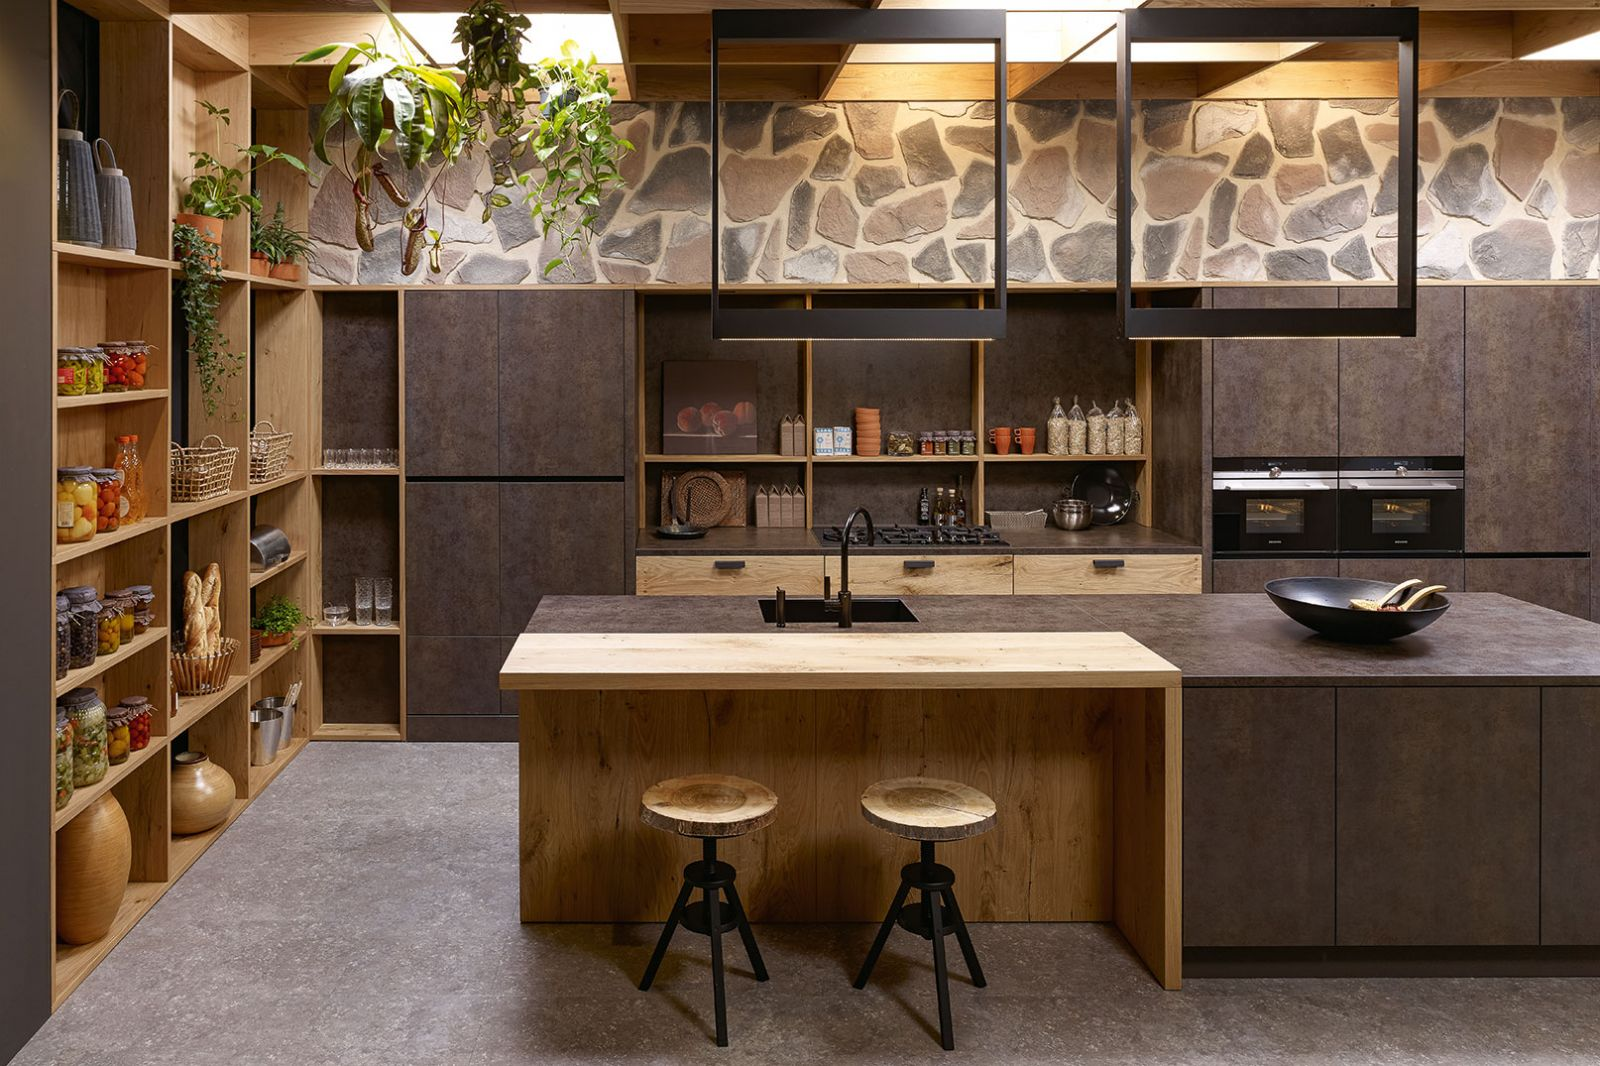 KH Mobel Kitchens